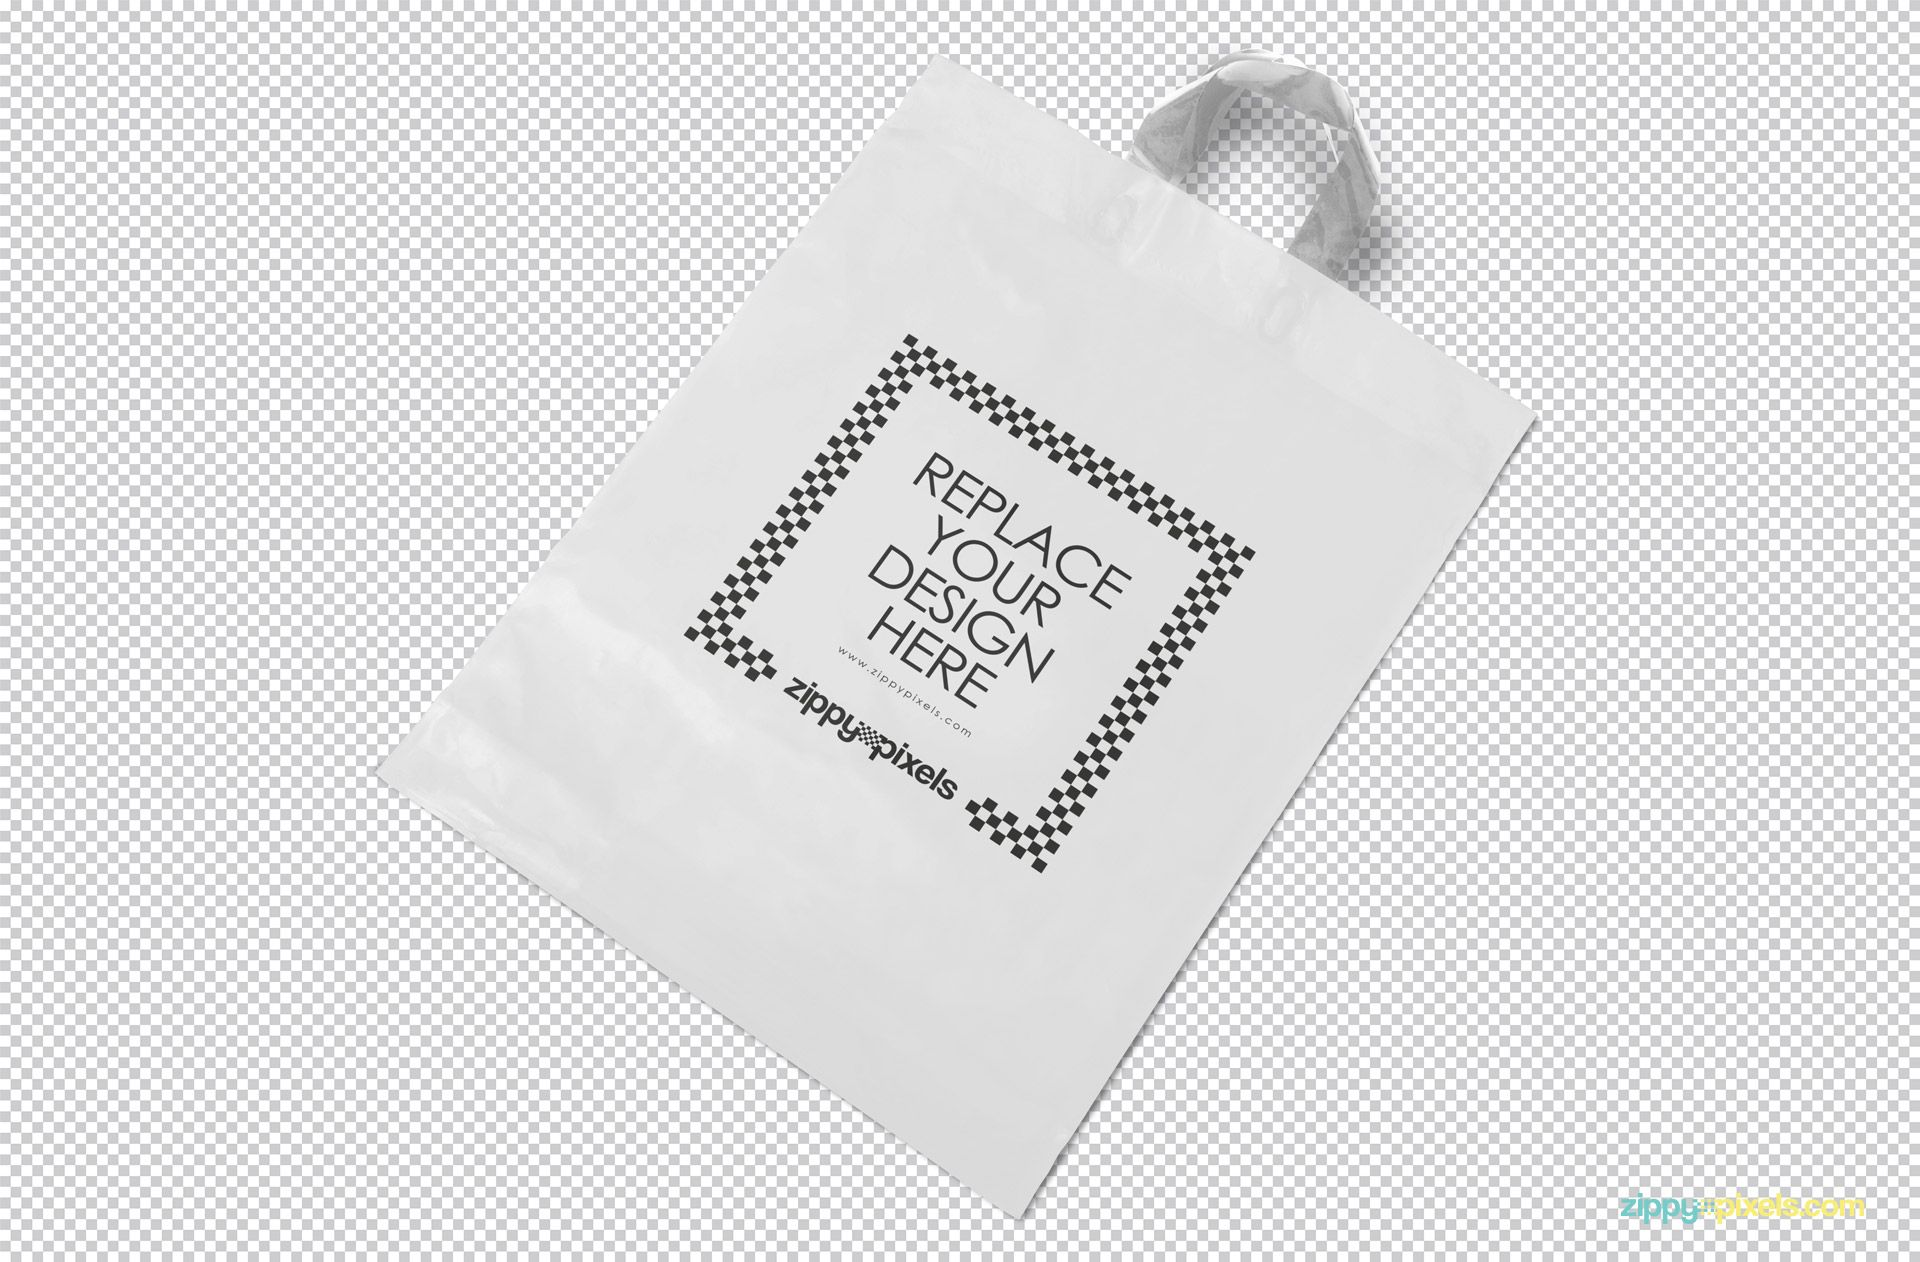 Download Polythene Shopping Bag Mockup Free Psd Zippypixels Bag Mockup Box Packaging Design Mockup Free Psd